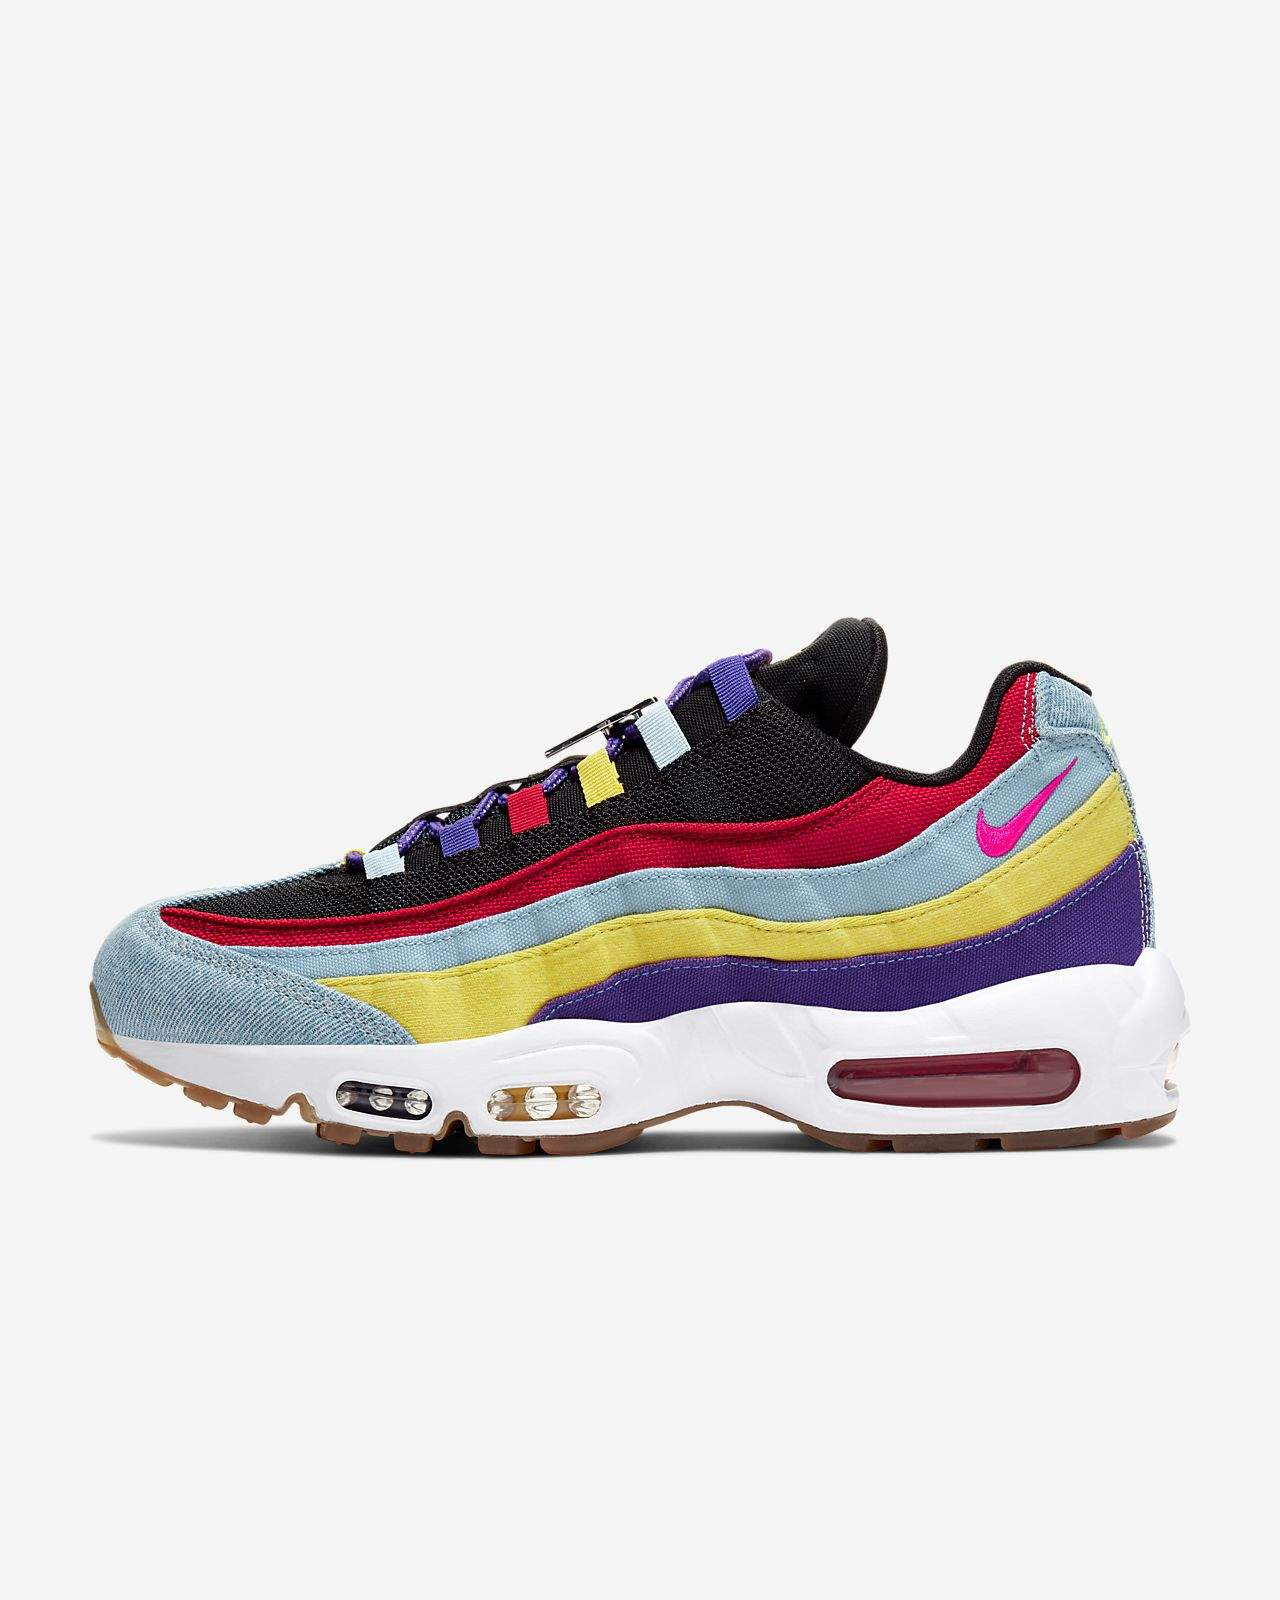 20 Best Nike Air Max 95 images in 2019 | Cheap nike air max